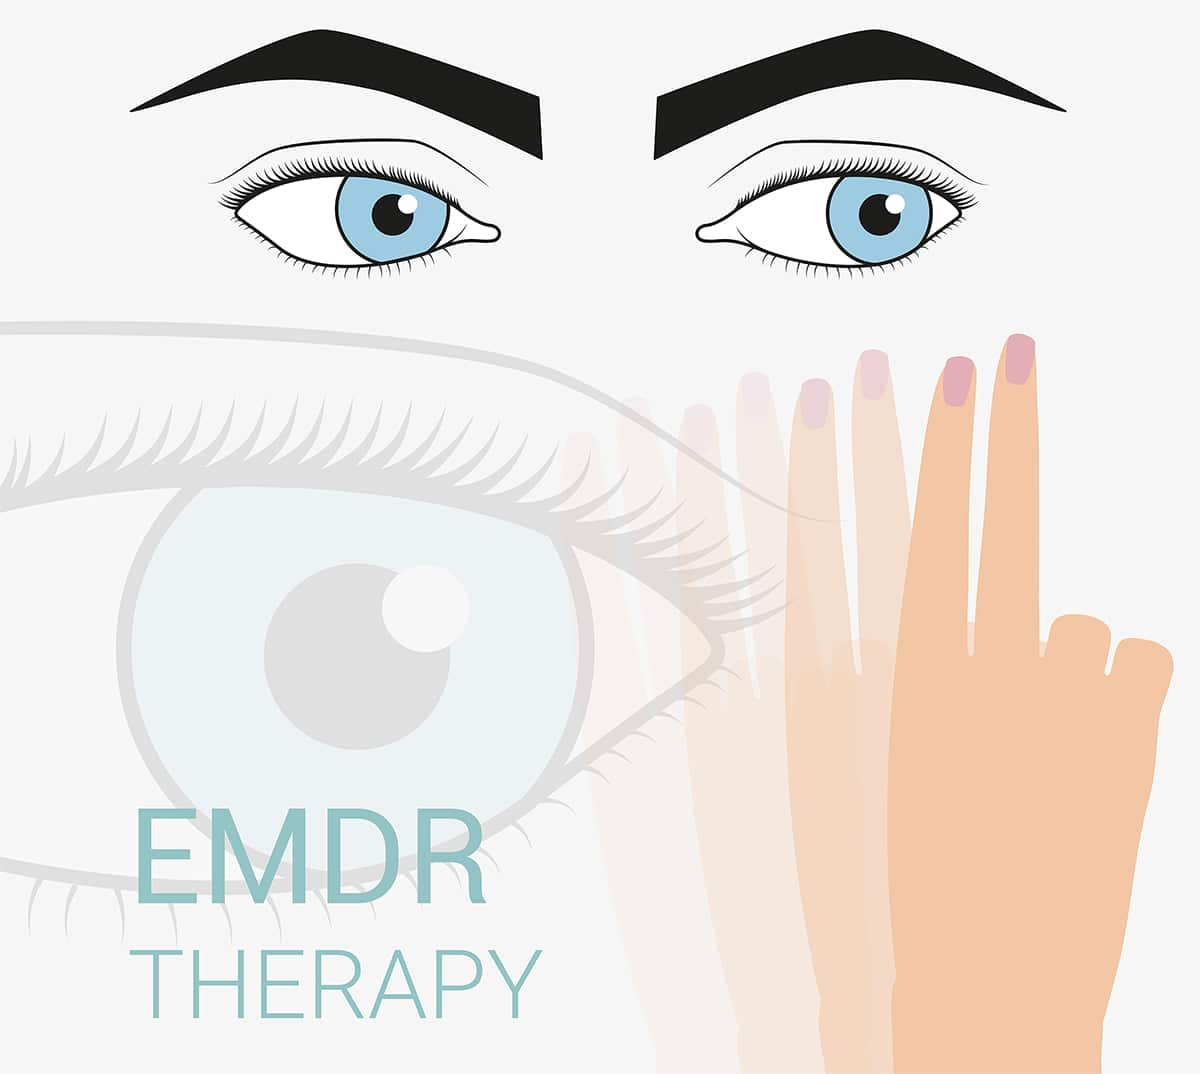 EMDR Therapy therapy